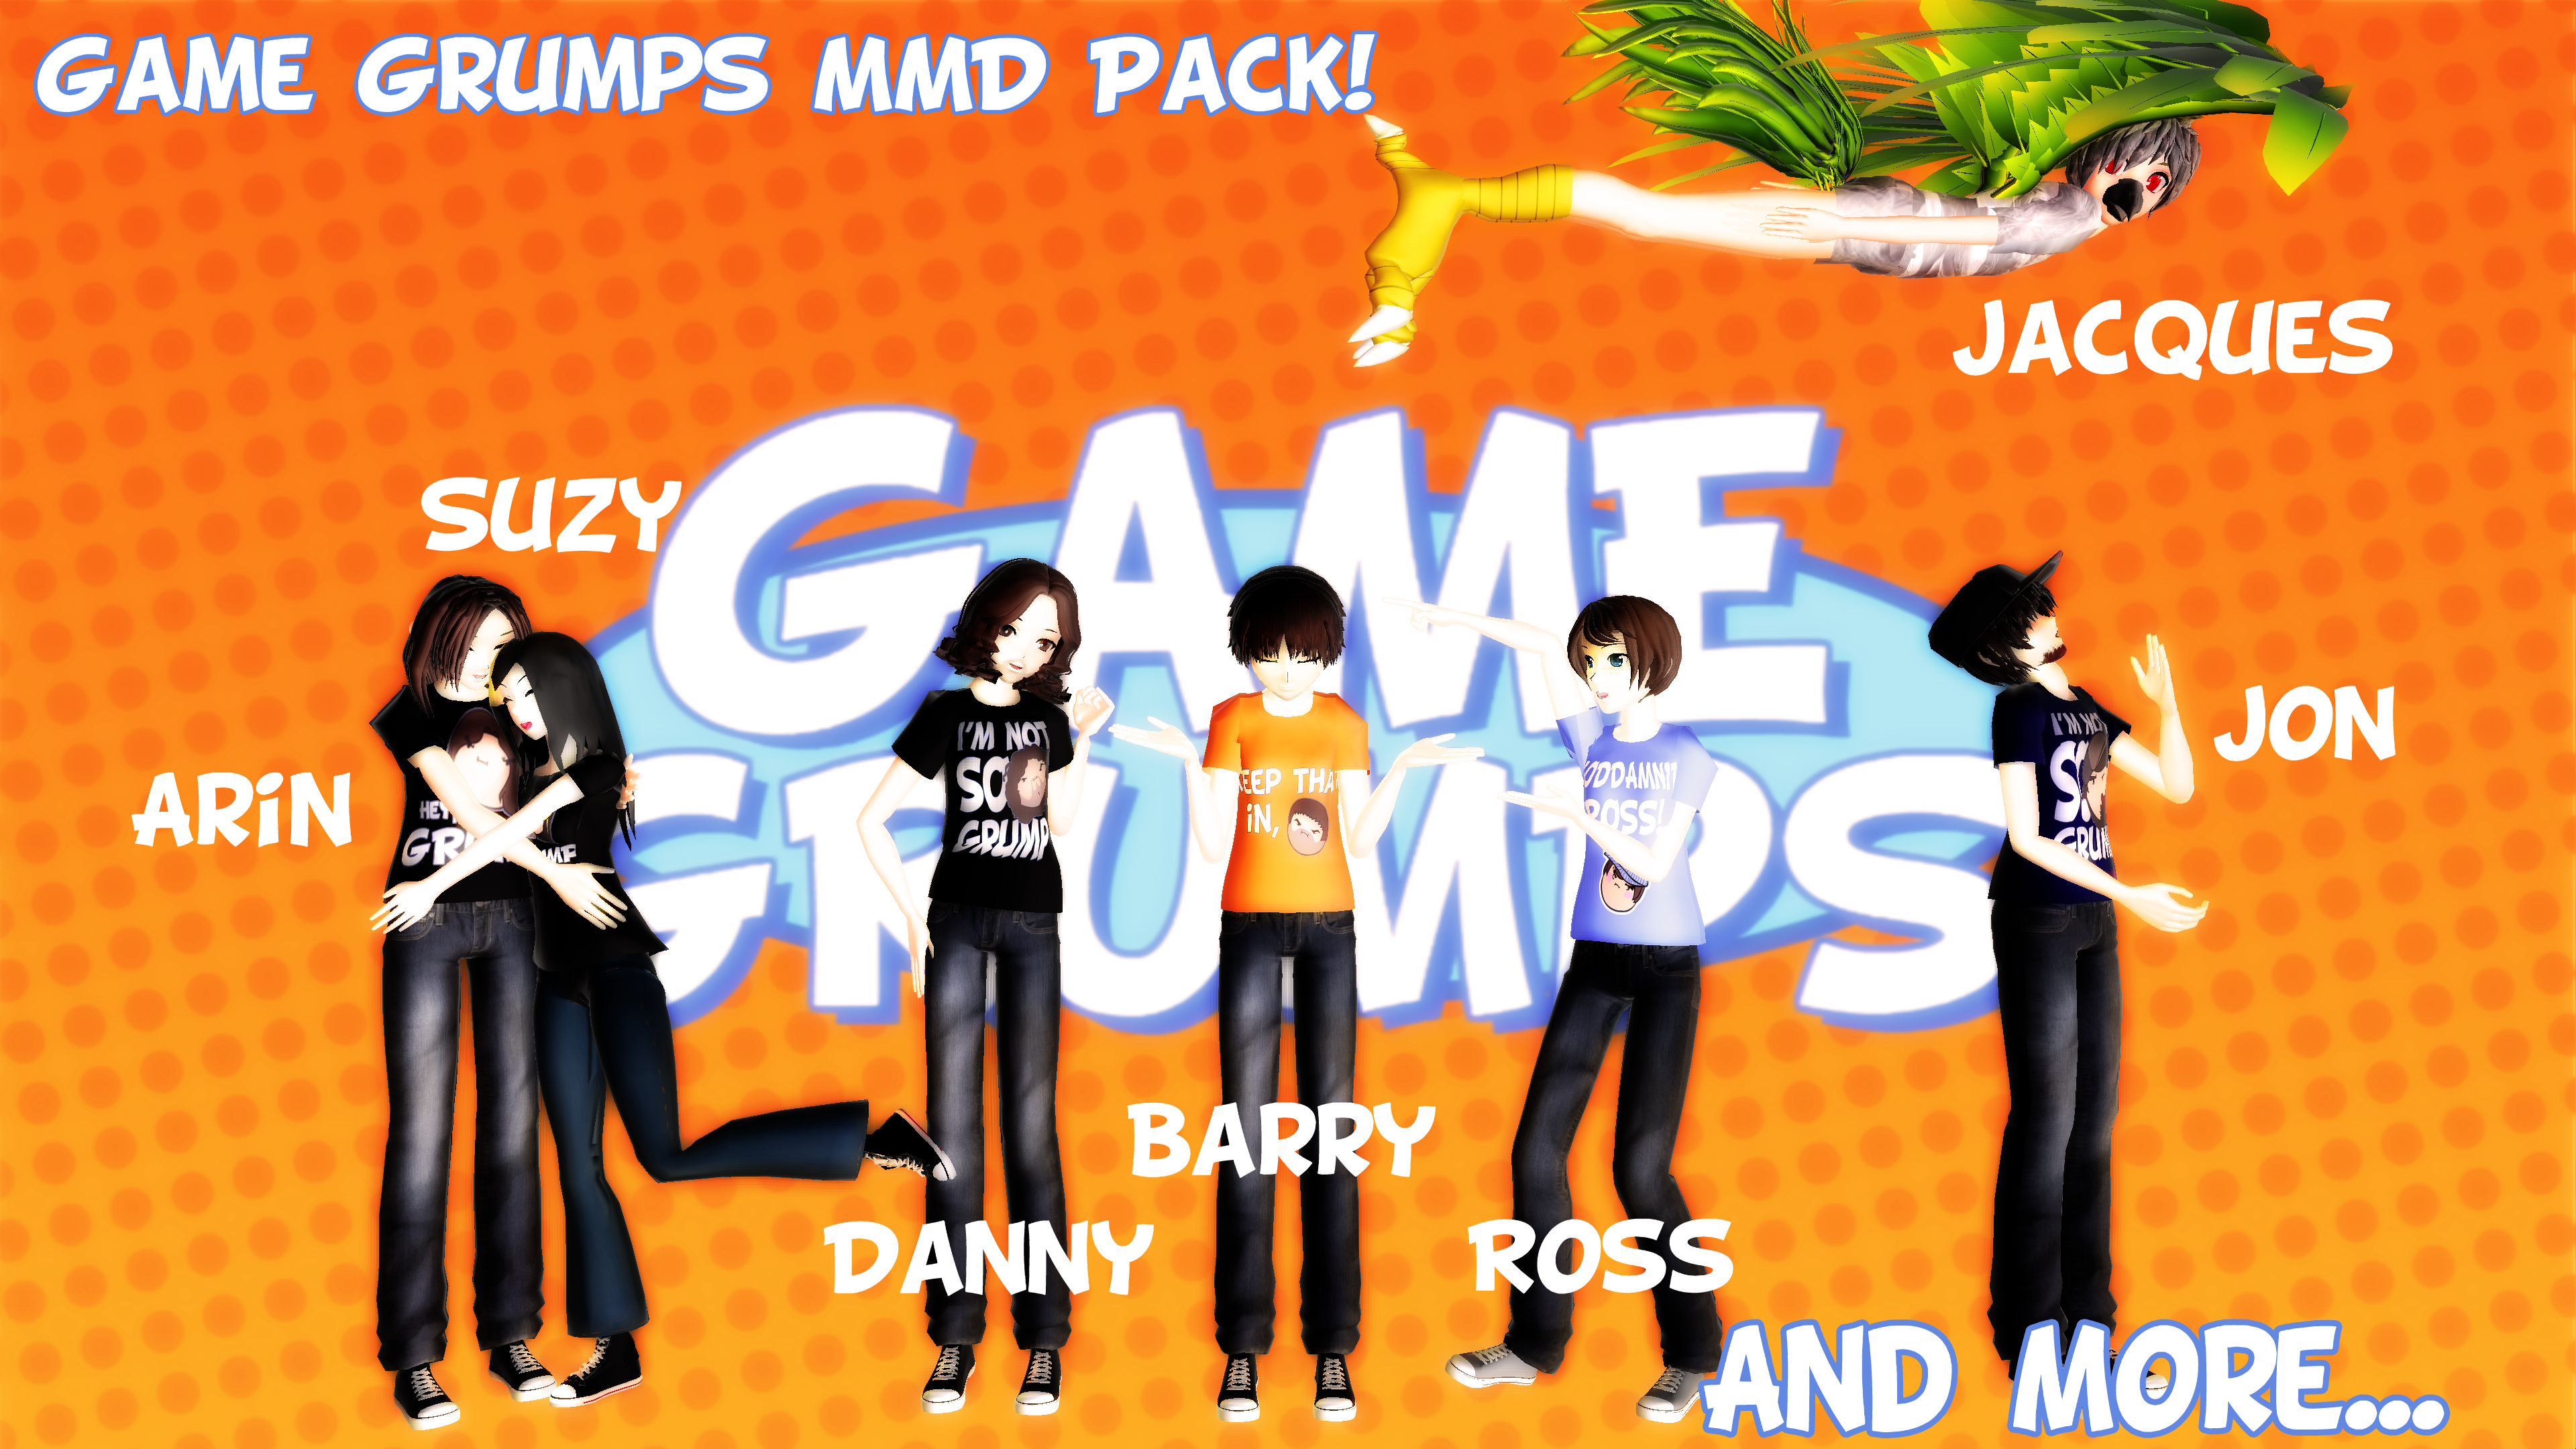 BIG-ASS GAME GRUMPS MMD PACK DOWNLOAD! by ...